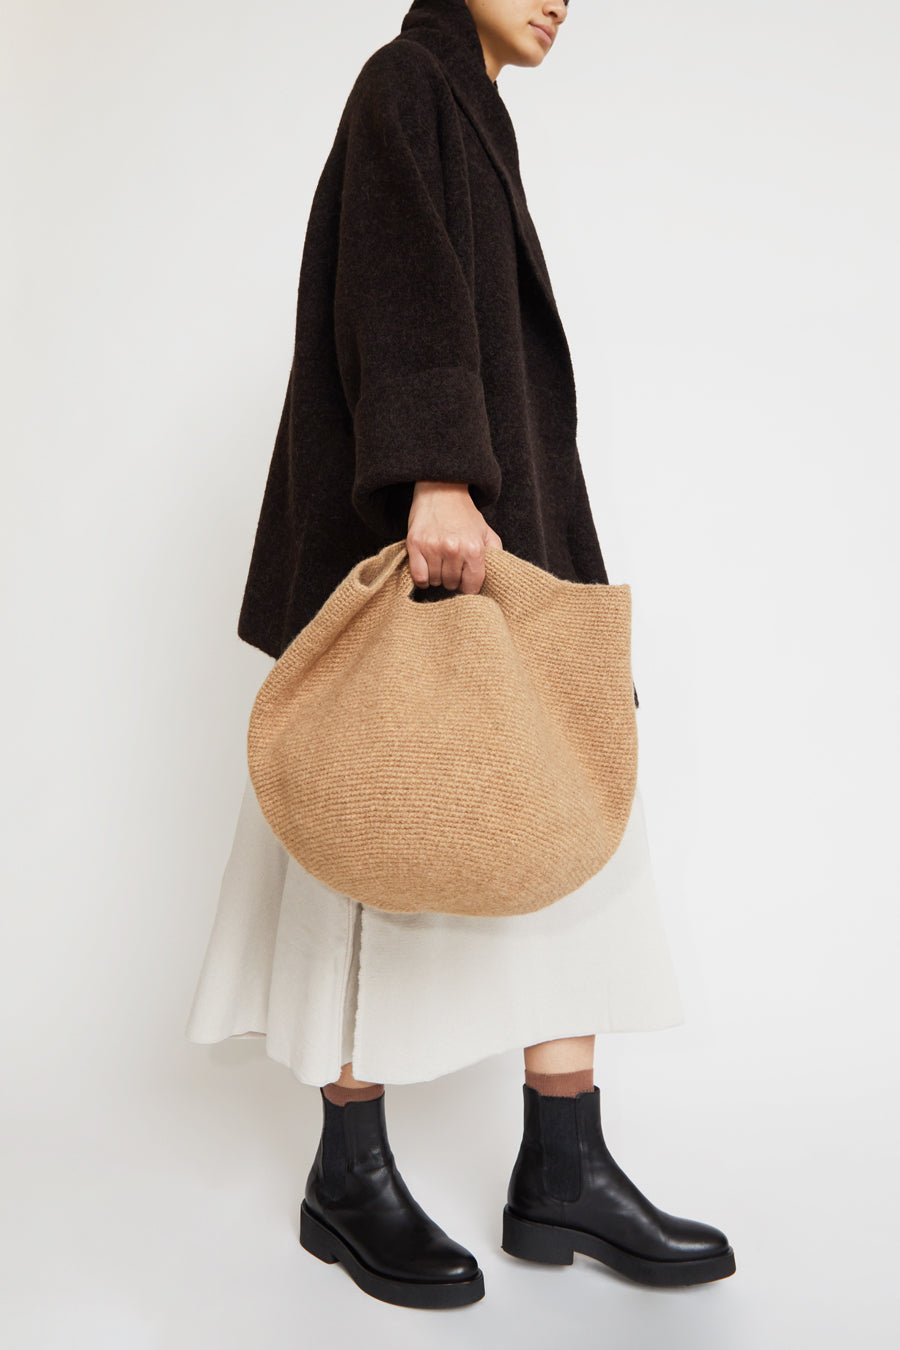 Lauren Manoogian Woolen Bowl Bag in Brindle